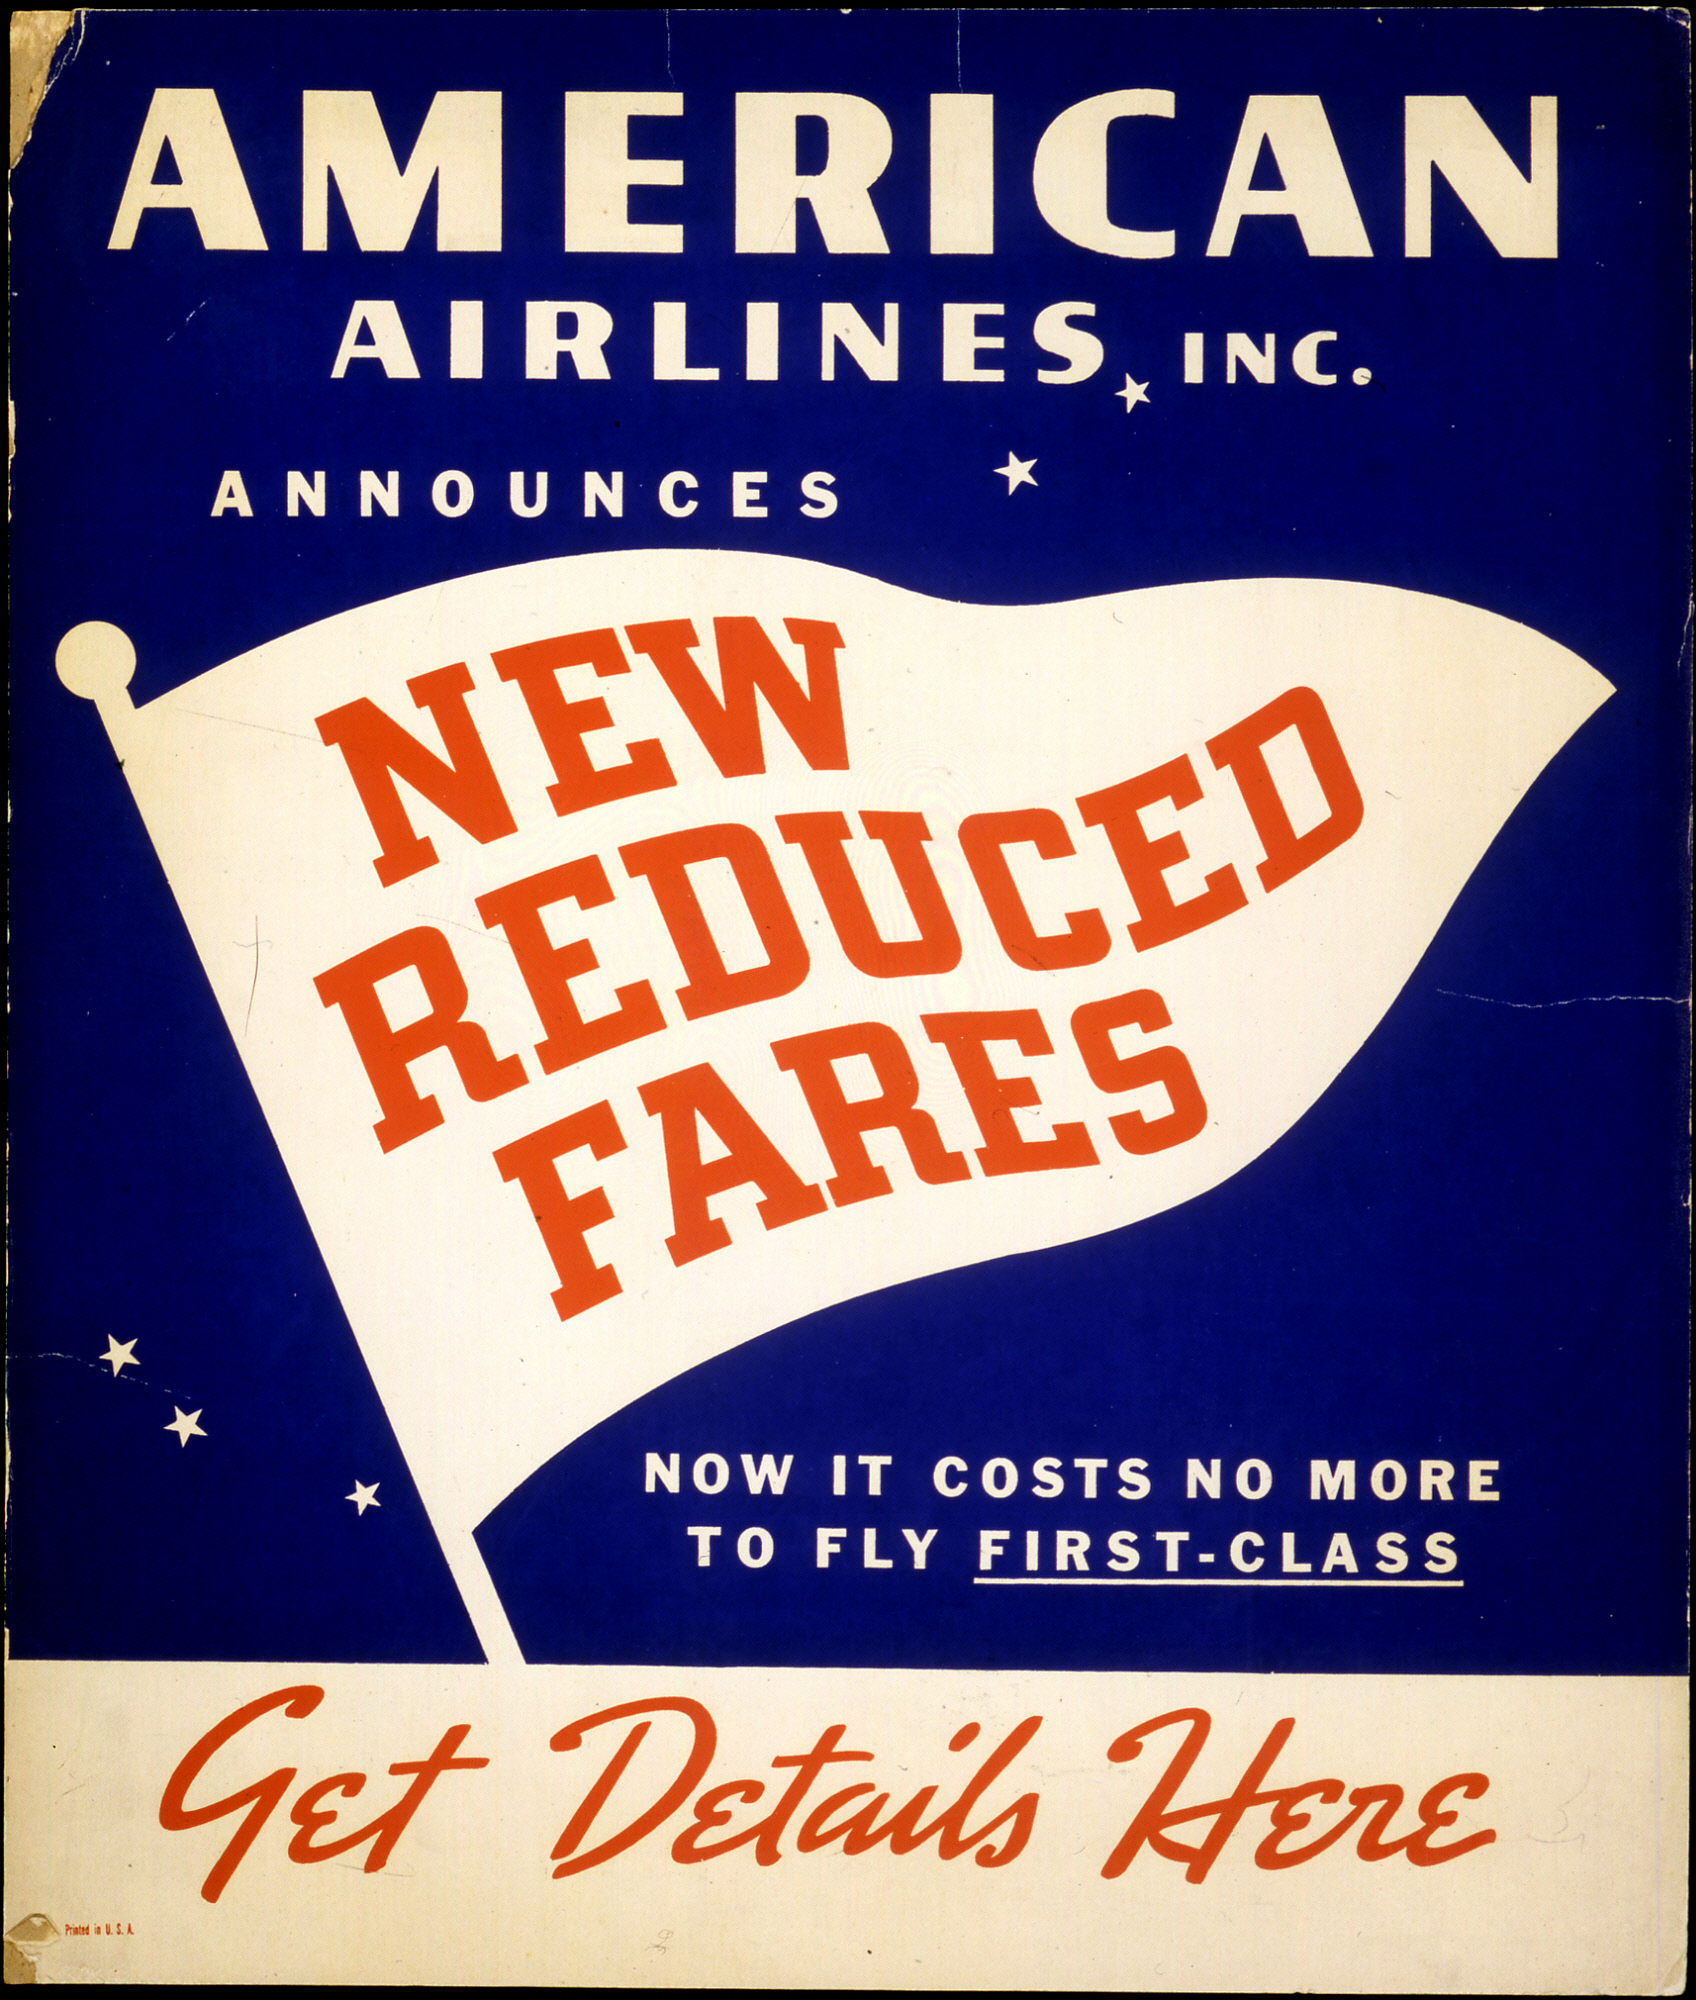 images for American Airlines New Reduced Fares